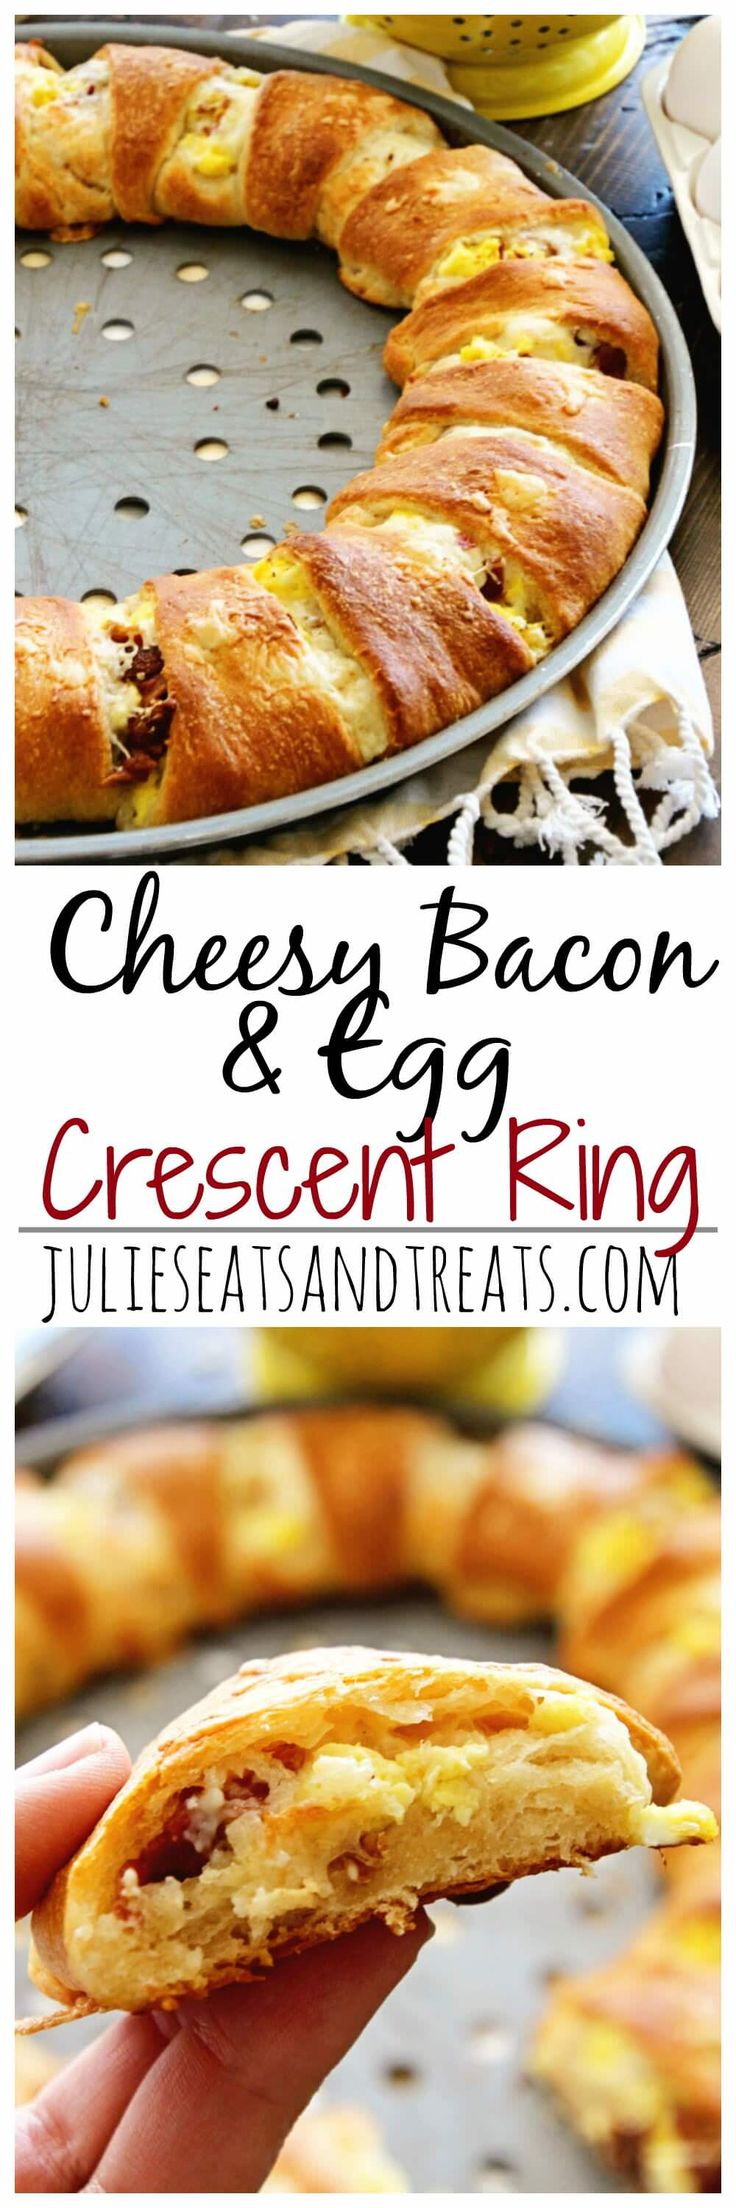 Cheesy Bacon & Egg Crescent Ring Recipe ~ Flaky Crescent Rolls Stuffed with Scrambled Eggs, Cheese, and Bacon for a Delicious Breakfast Recipe! ~ https://www.julieseatsandtreats.com